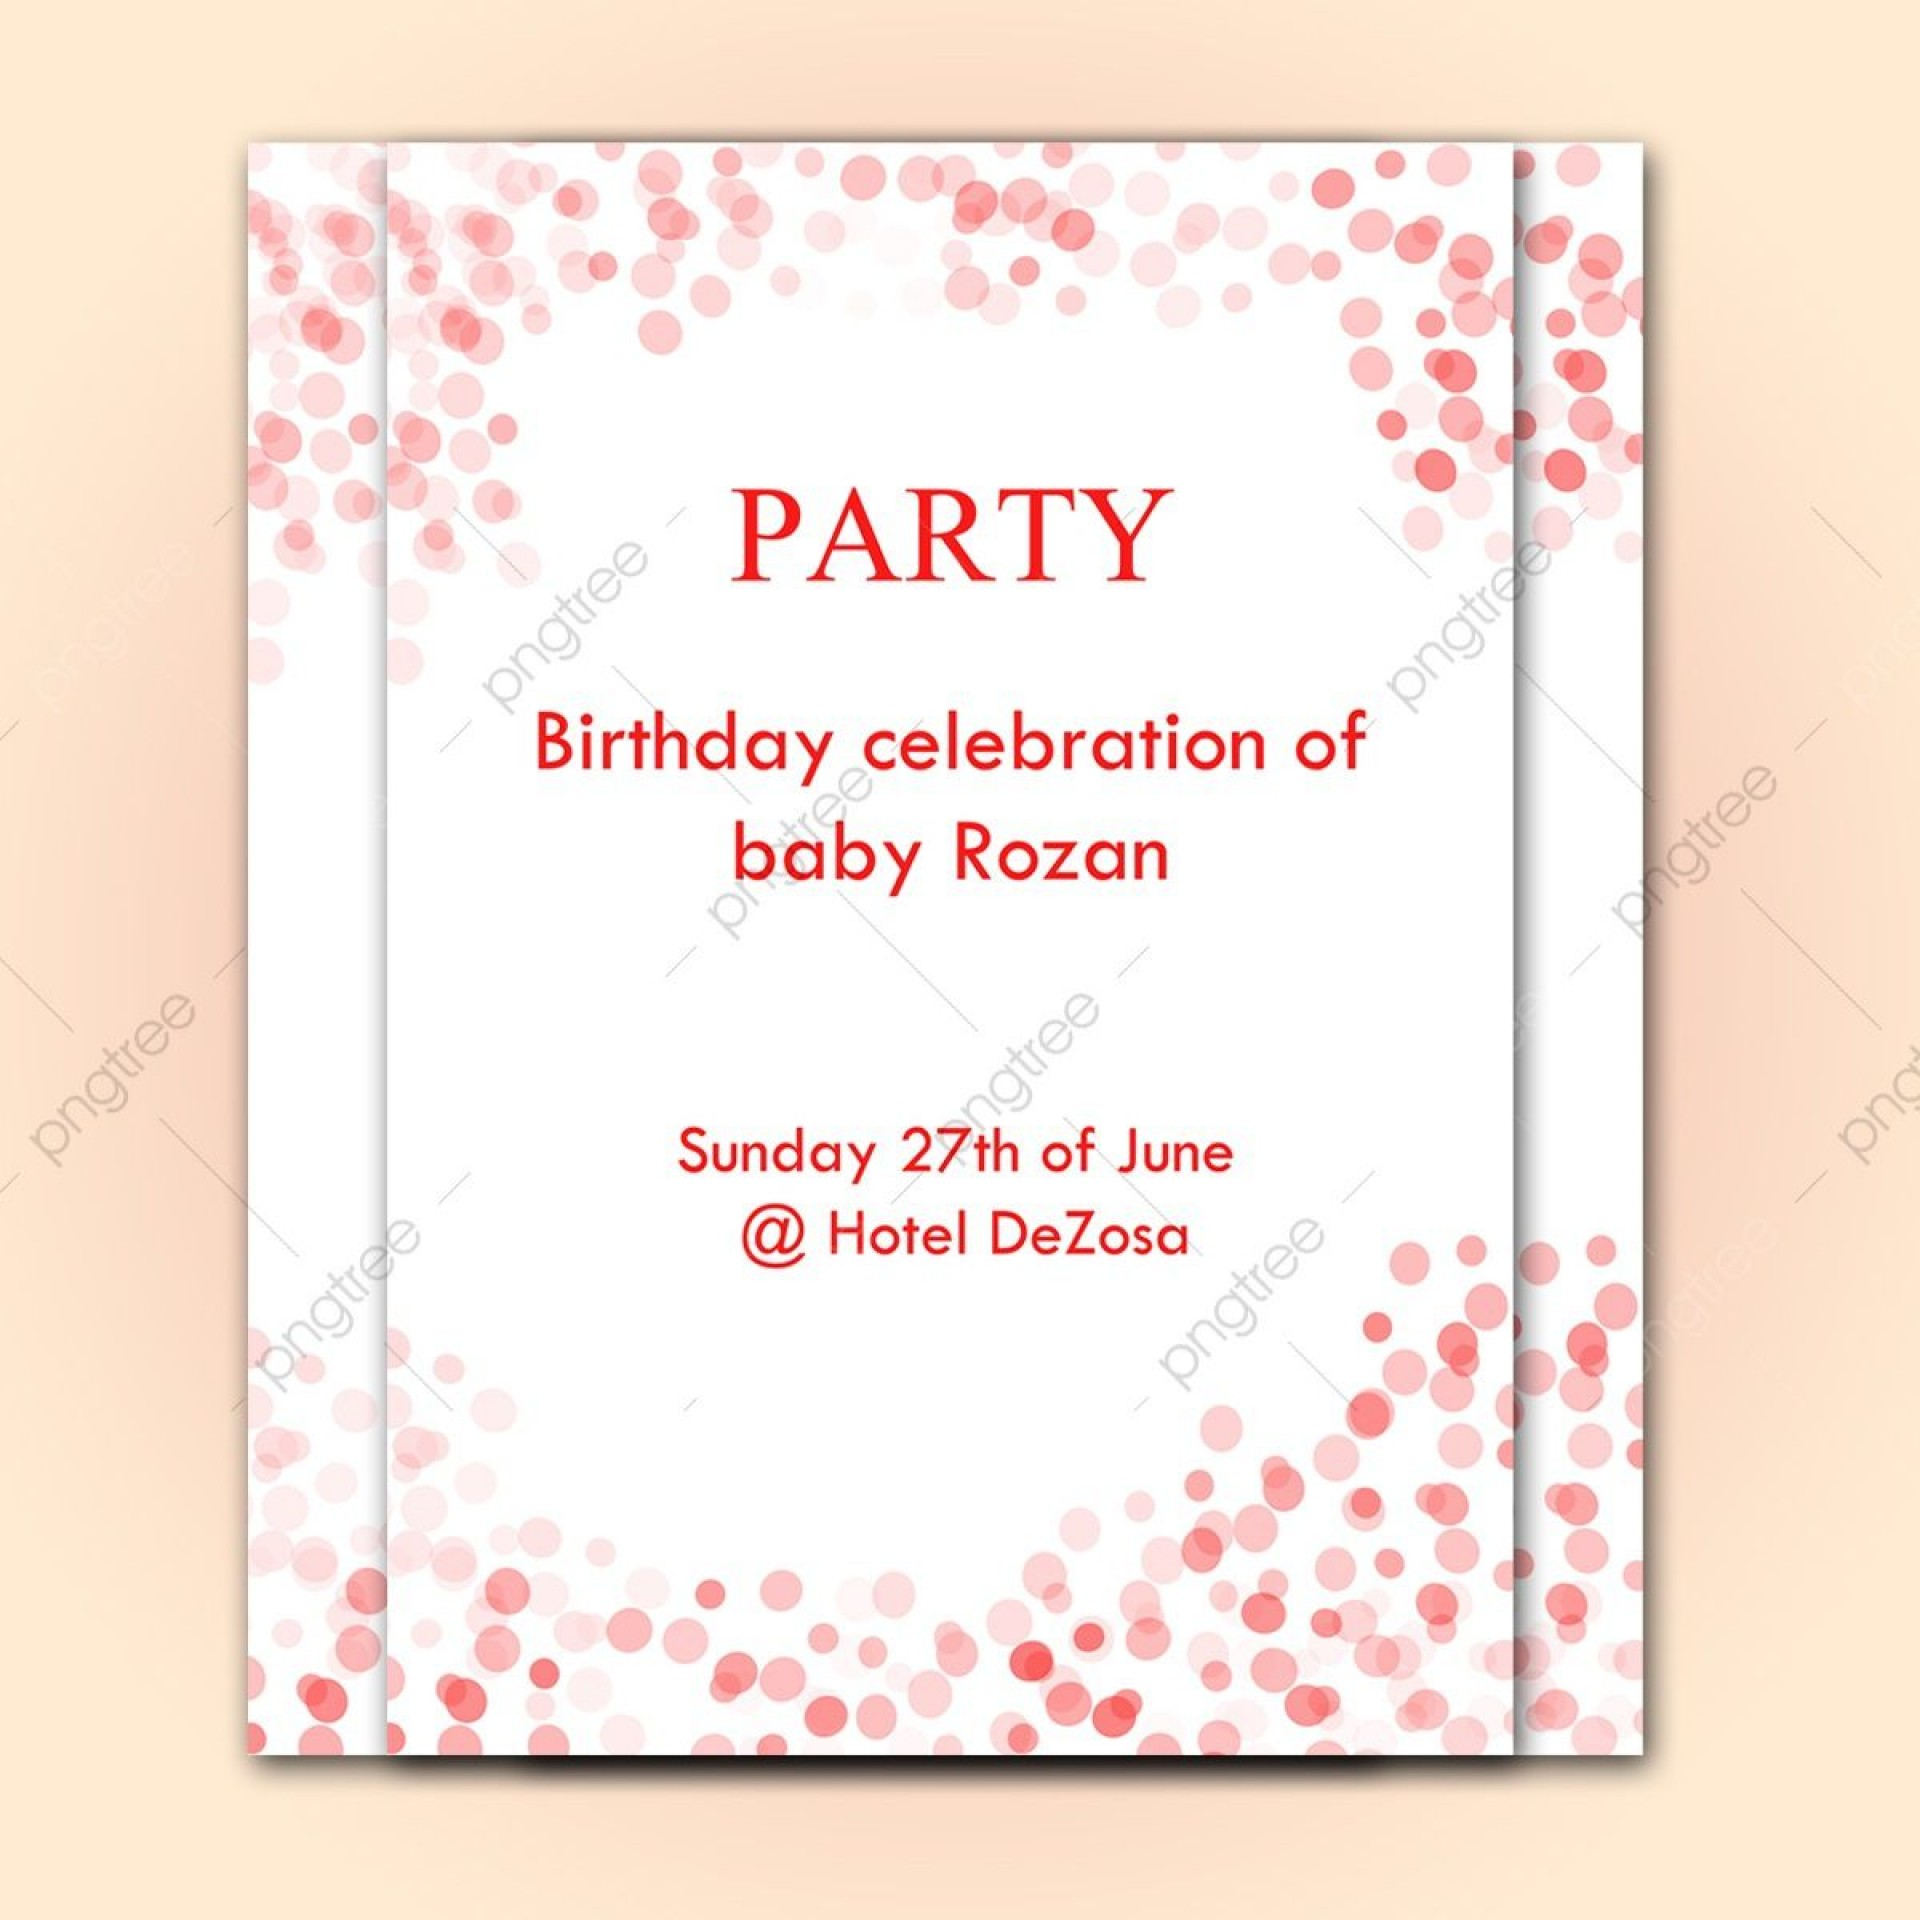 009 Stunning Birthday Party Invitation Flyer Template Free Download High Resolution 1920